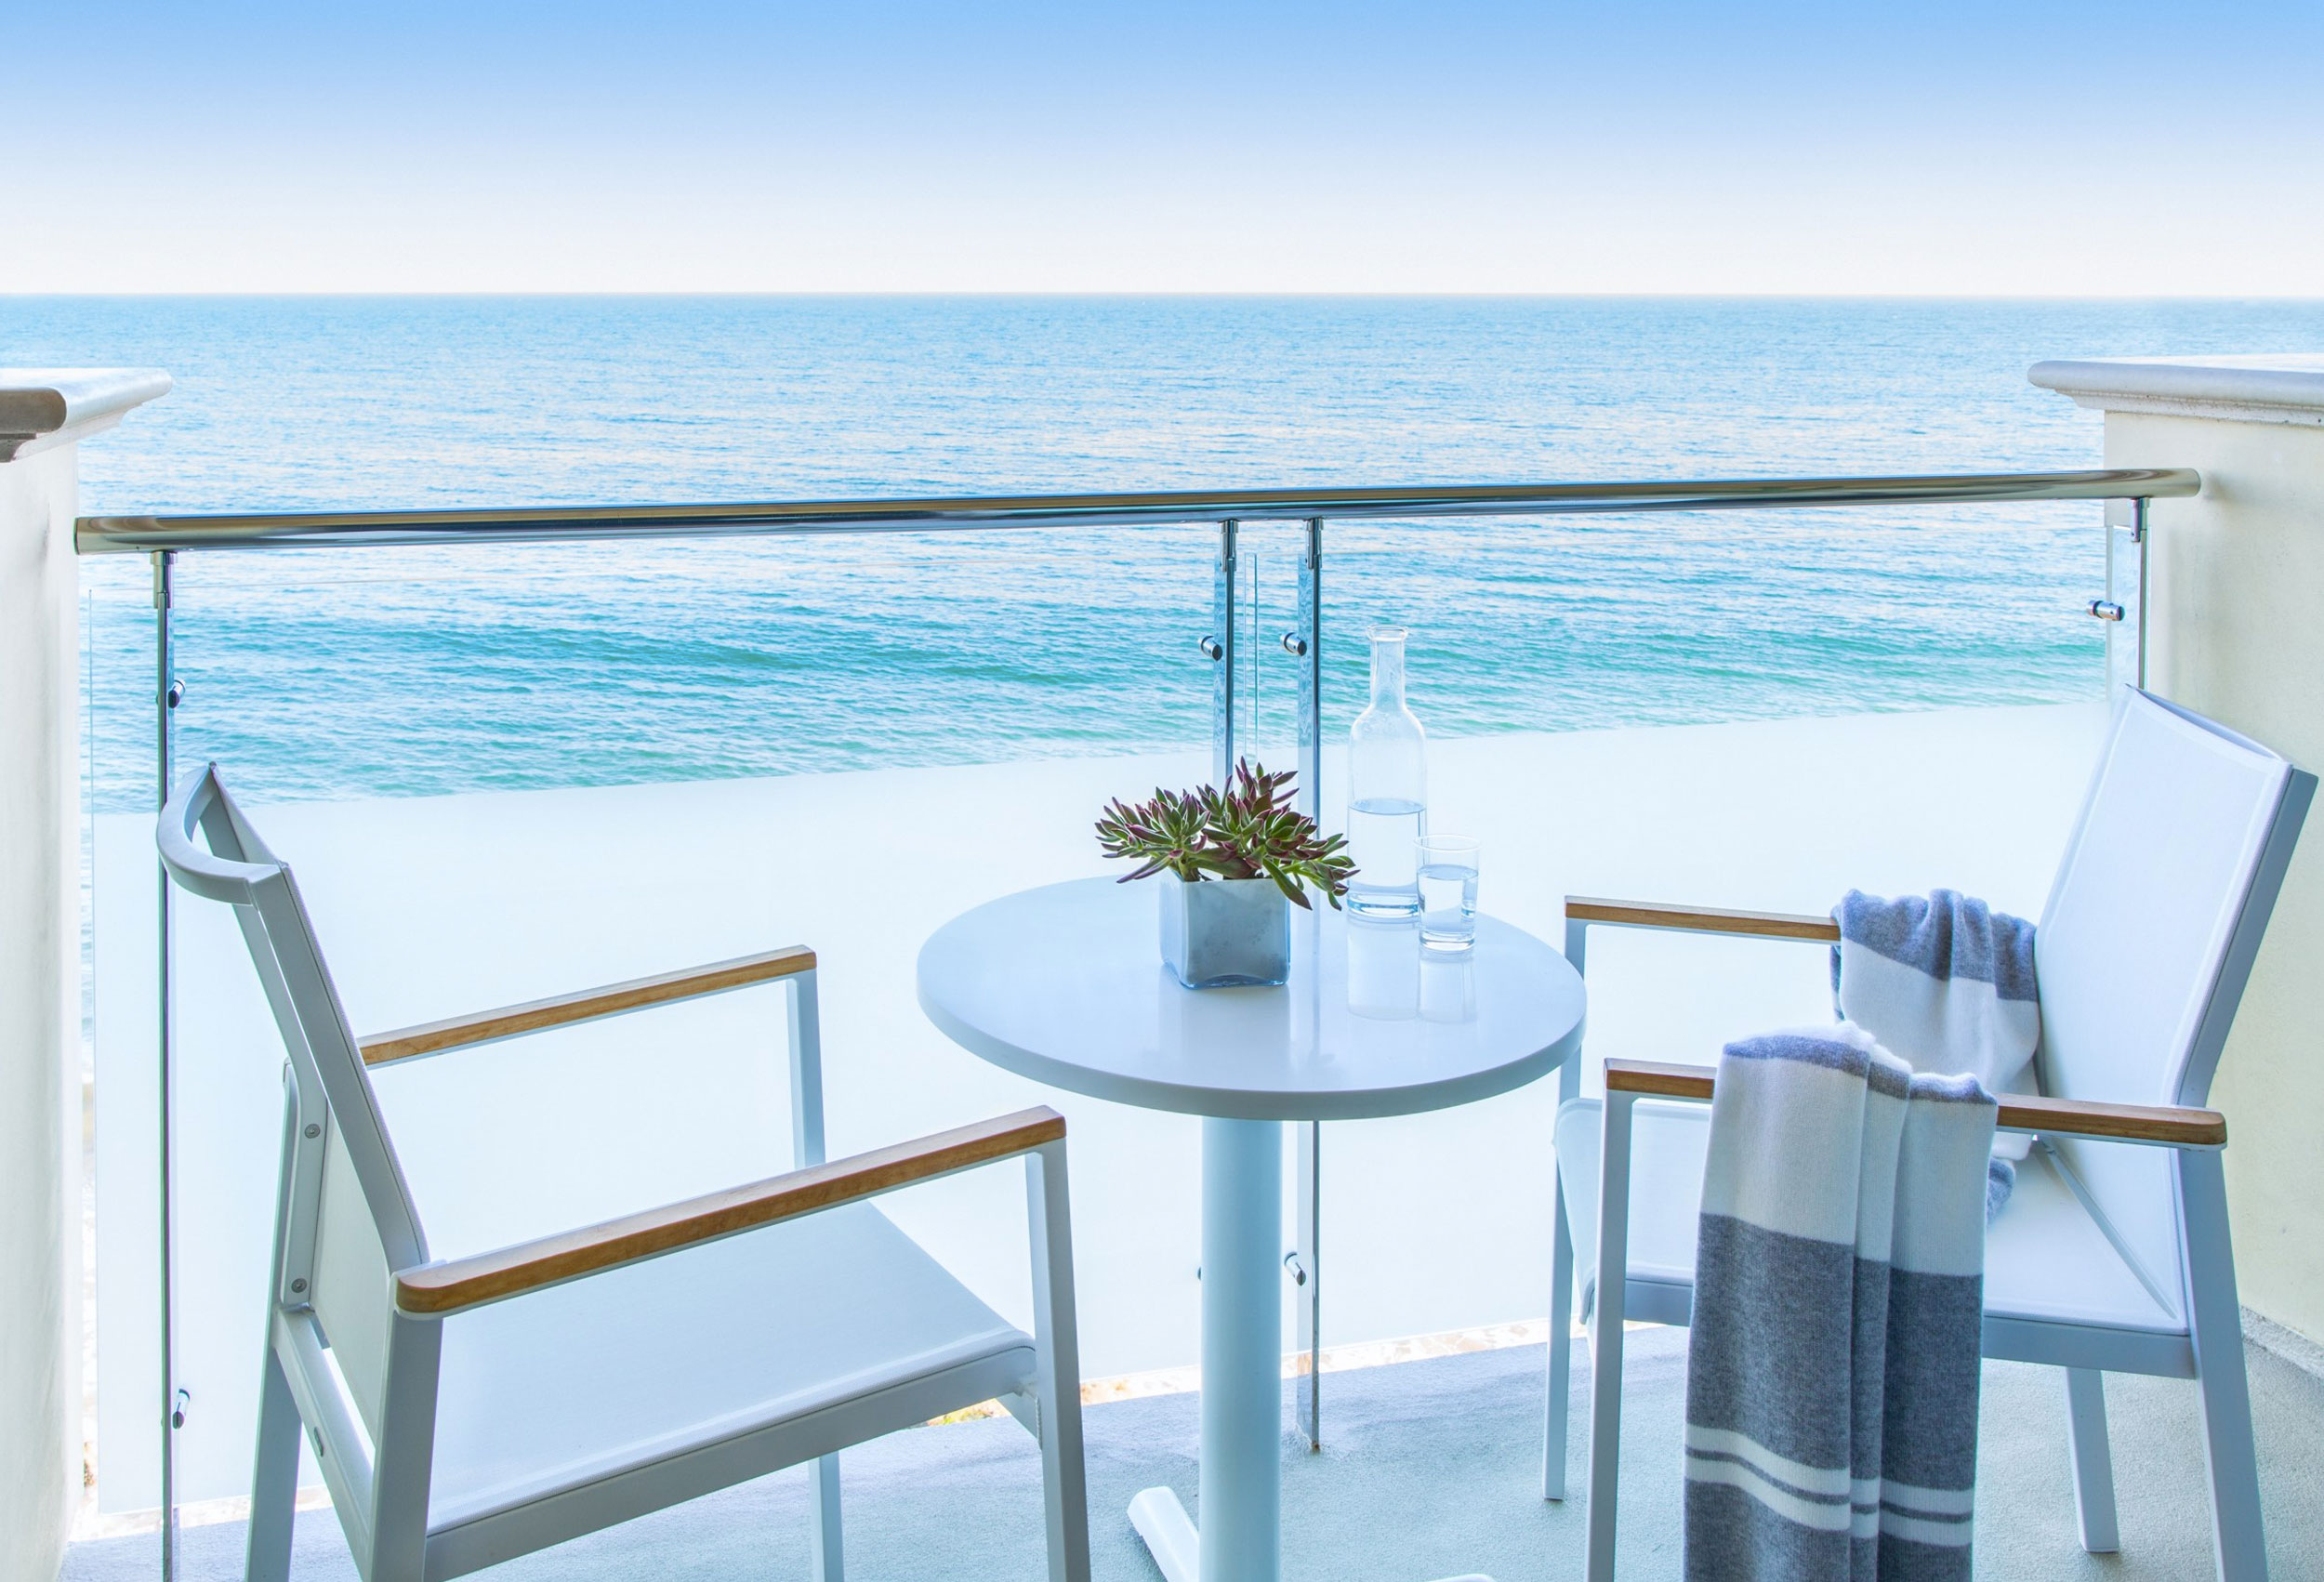 Malibu Beach Inn Balcony Chairs